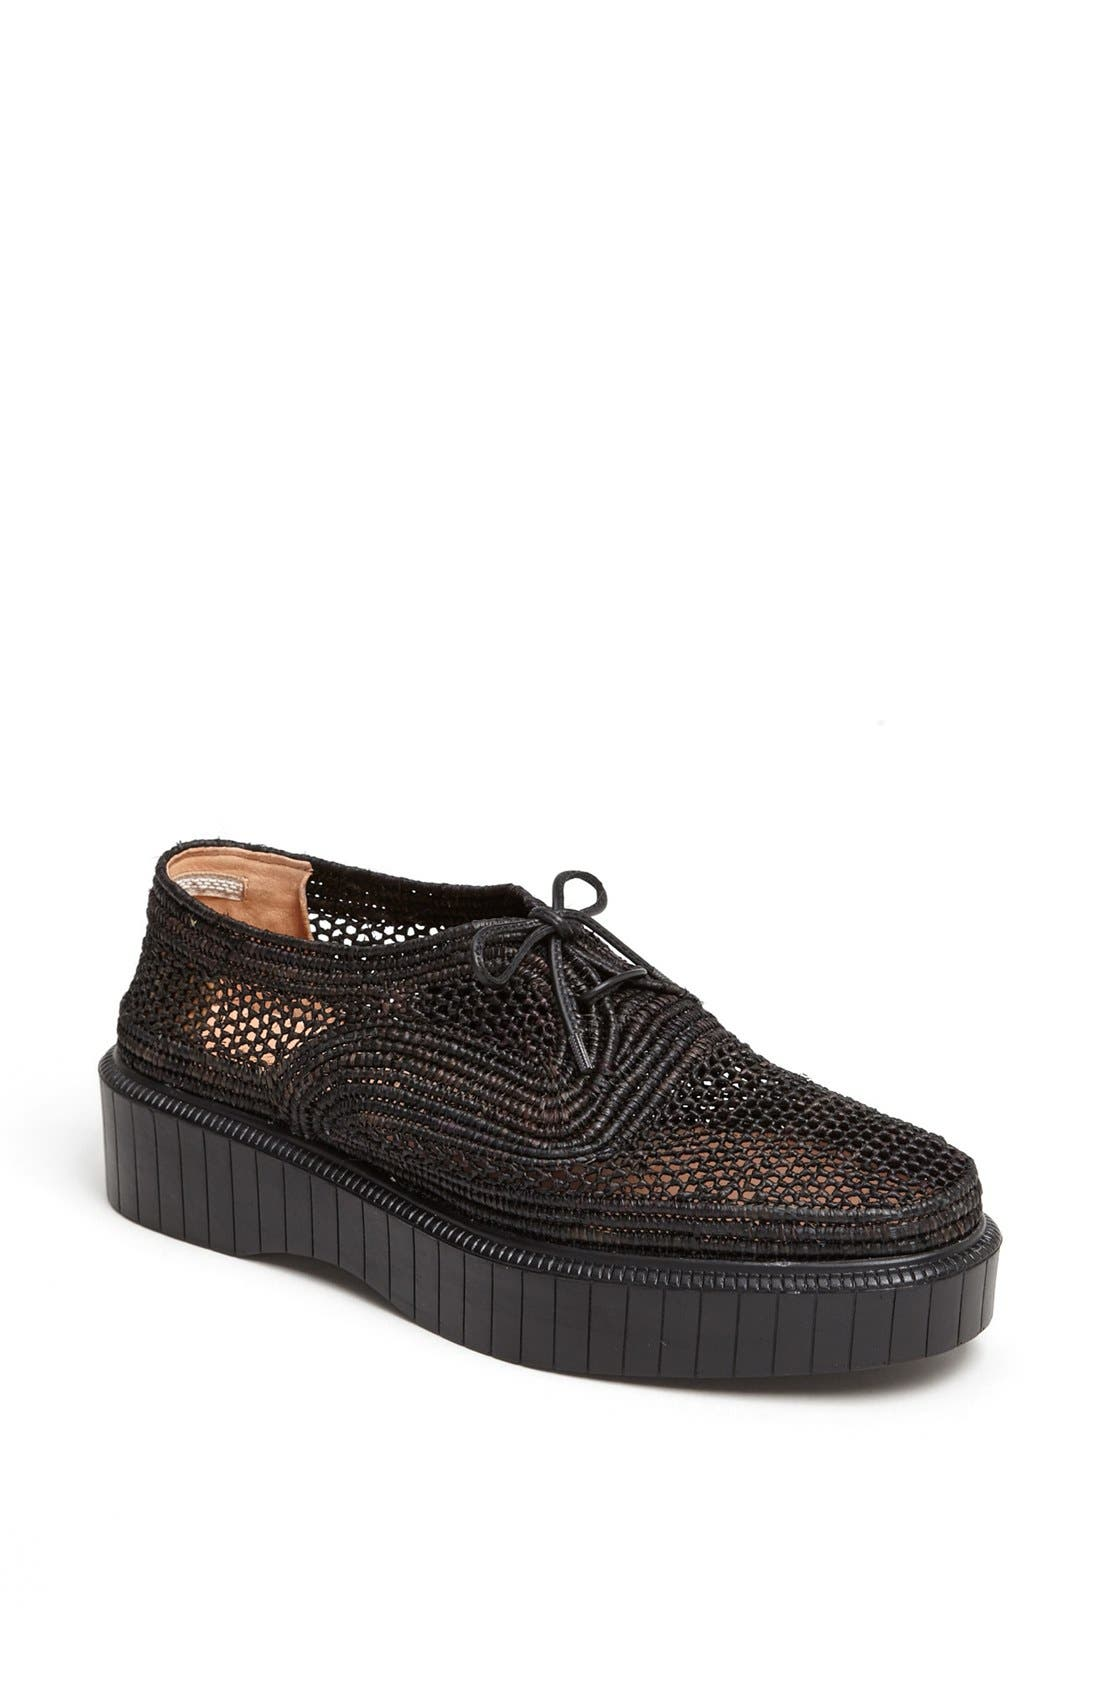 Alternate Image 1 Selected - Robert Clergerie 'Pogo' Raffia Platform Oxford